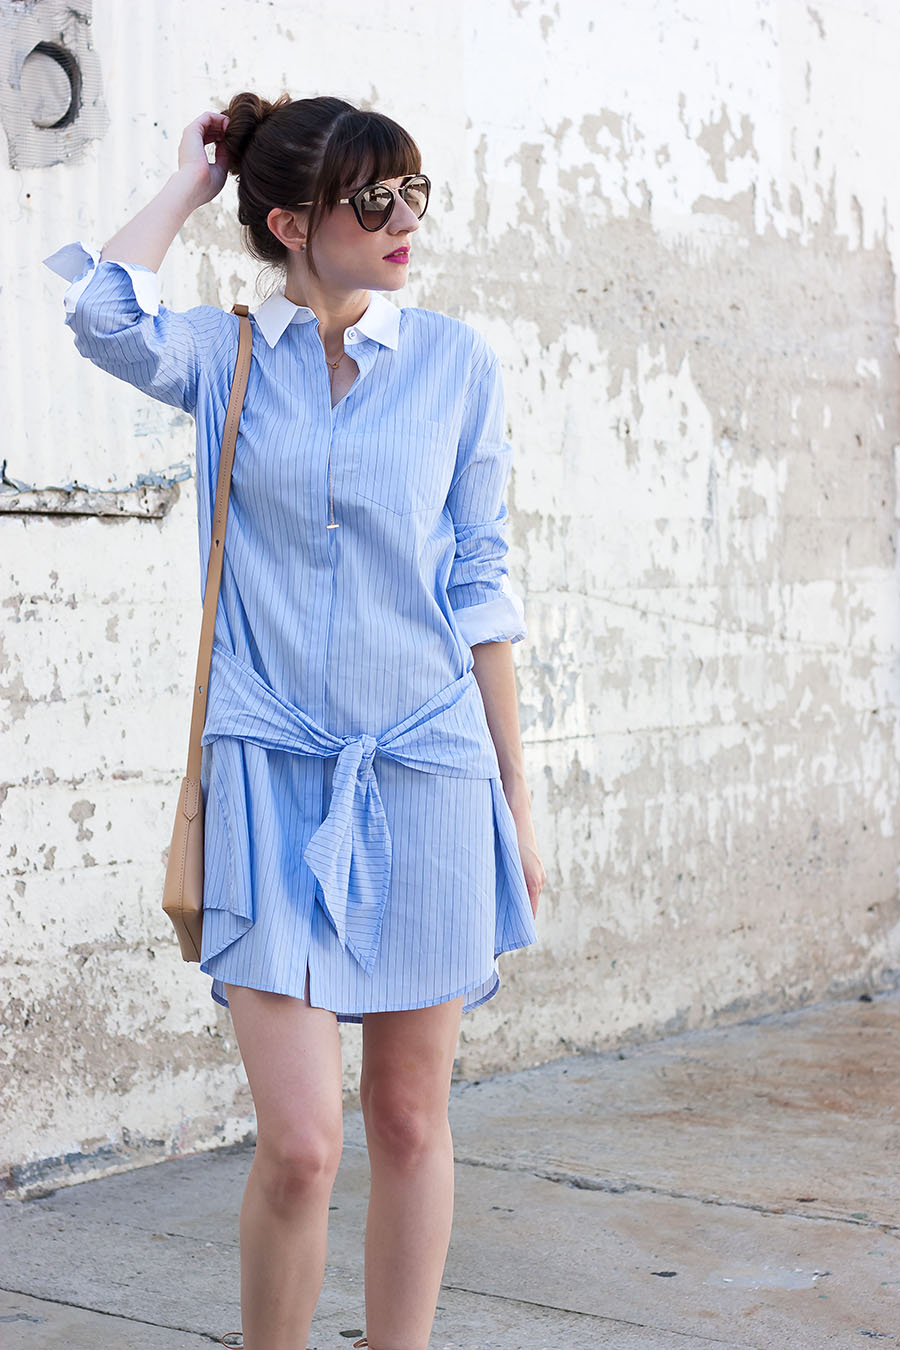 Prada Sunglasses, Tie Waist Dress, Menswear Shirtdress